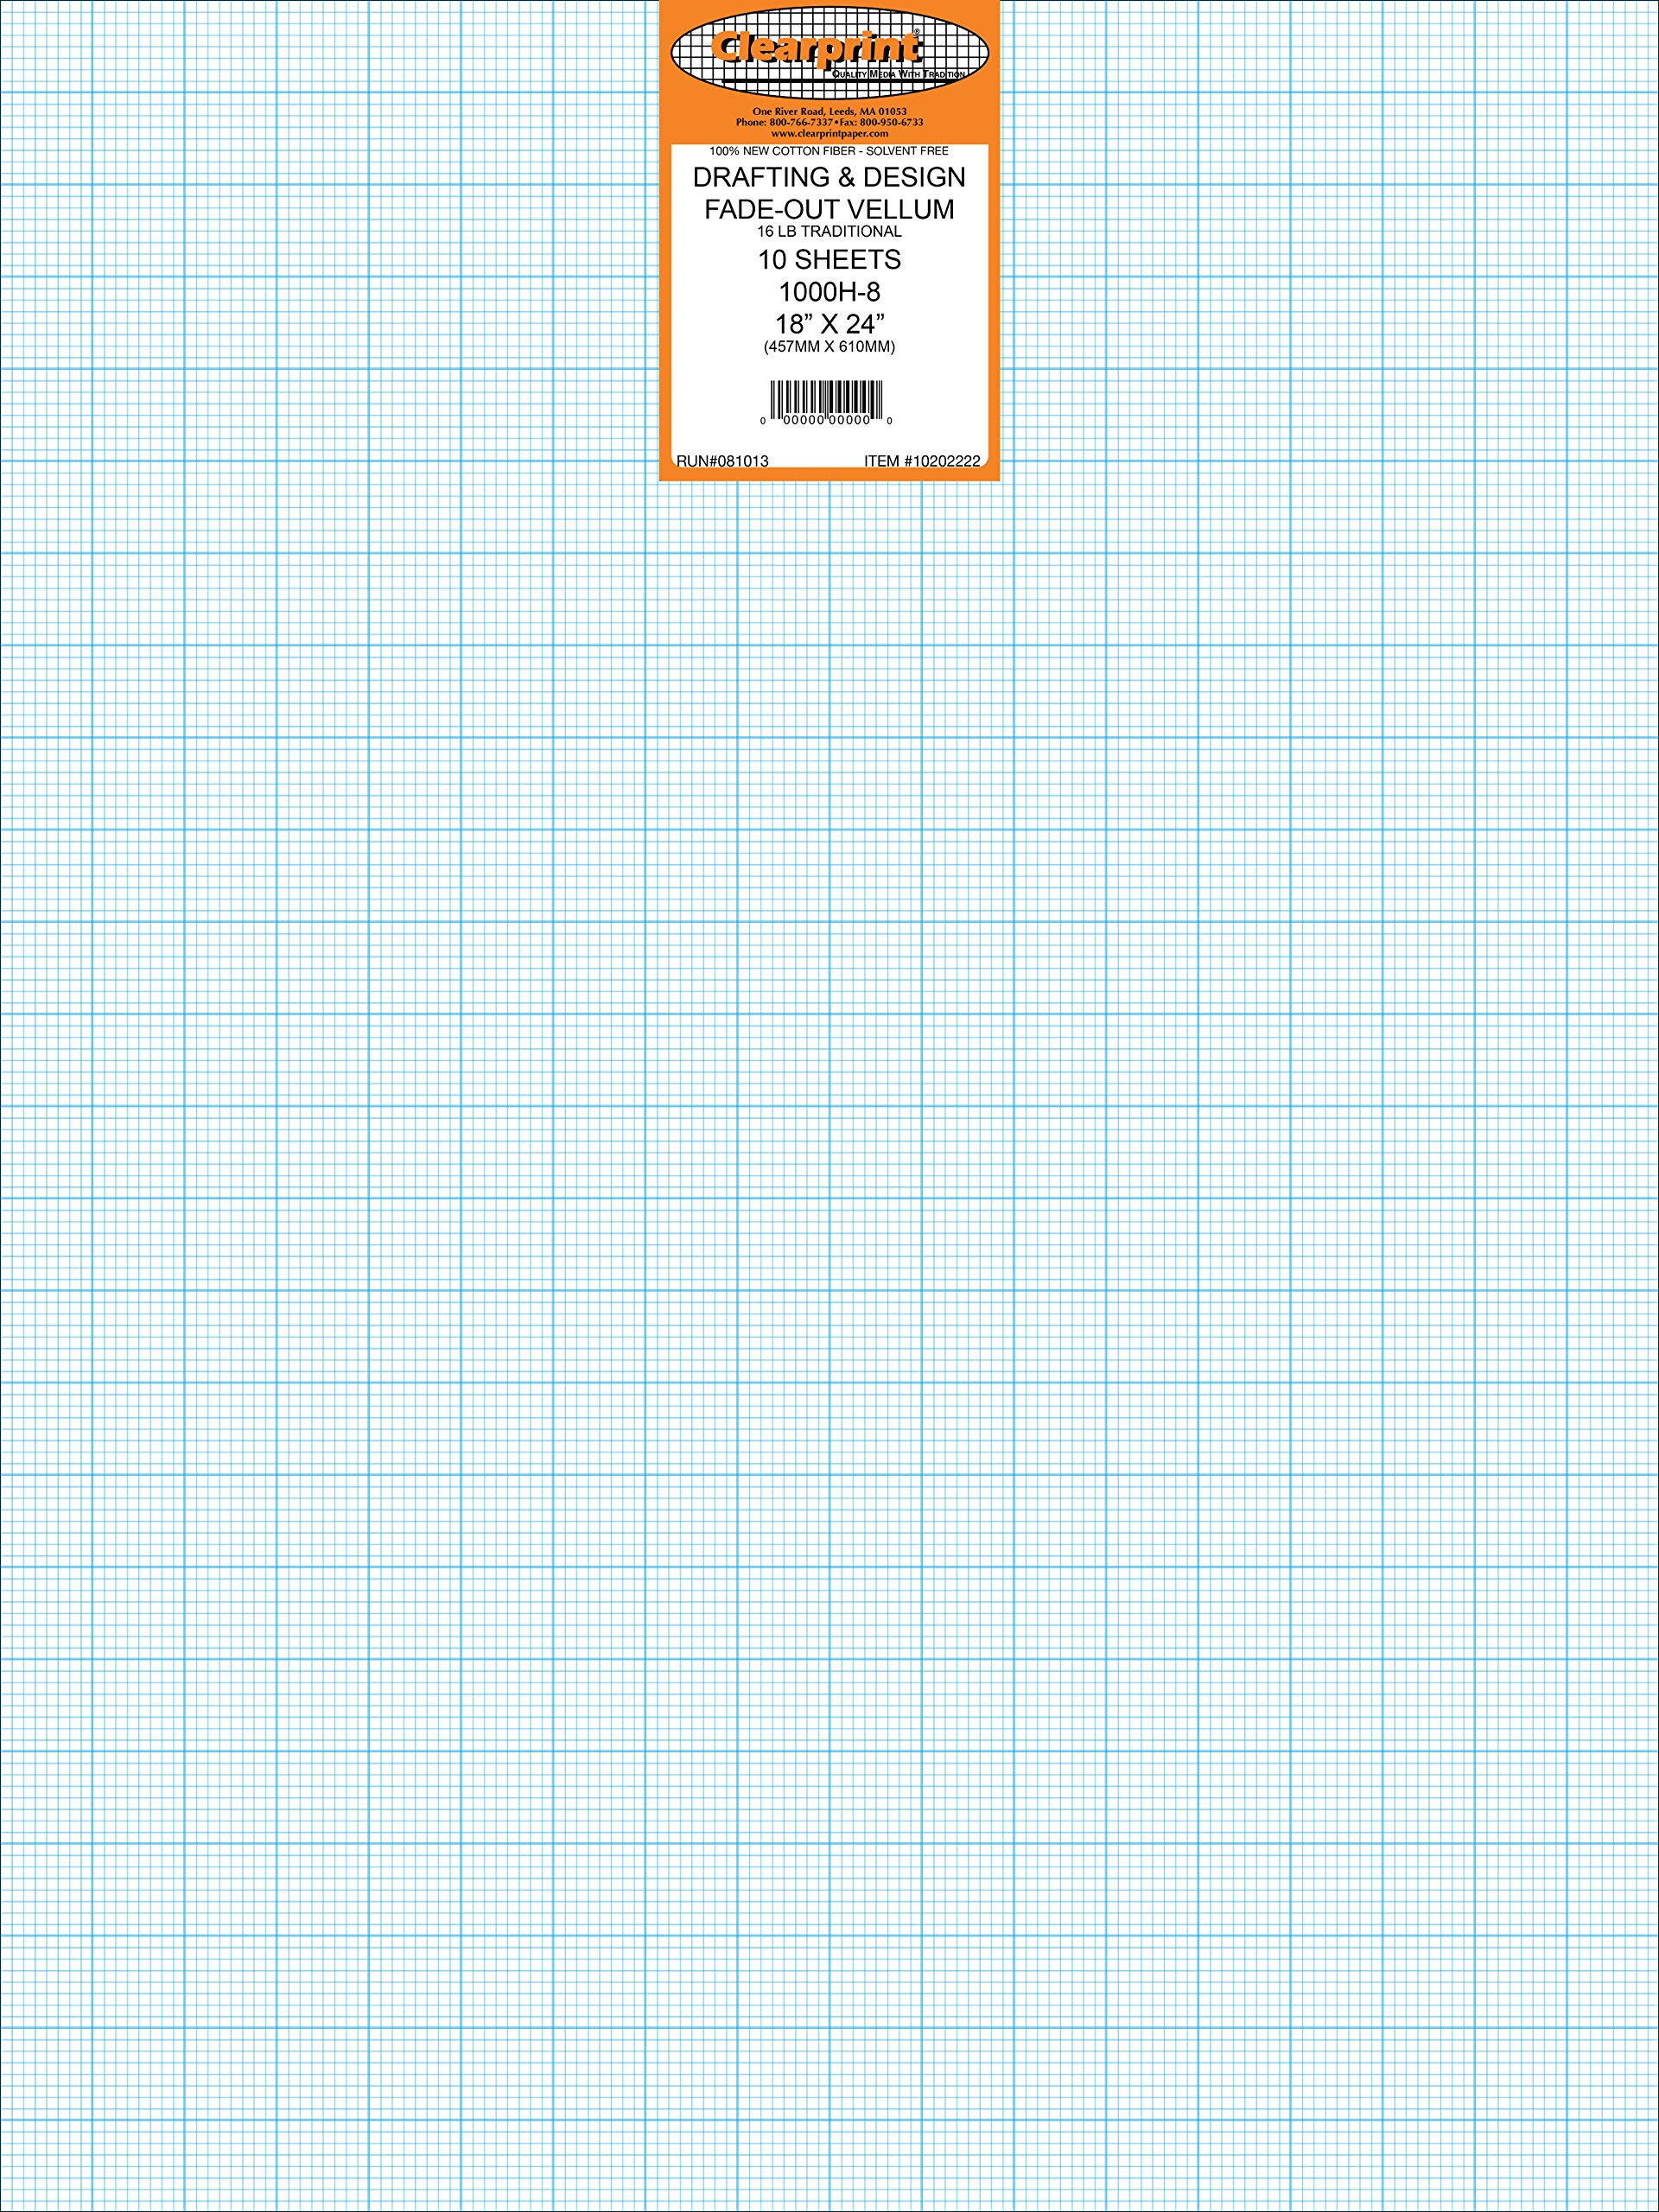 Clearprint 1000H Design Vellum Sheets with Printed Fade-Out 8x8 Grid, 16 lb, 100% Cotton, 18 x 24 Inches, 10 Sheets/Pack, Translucent White (10202222)